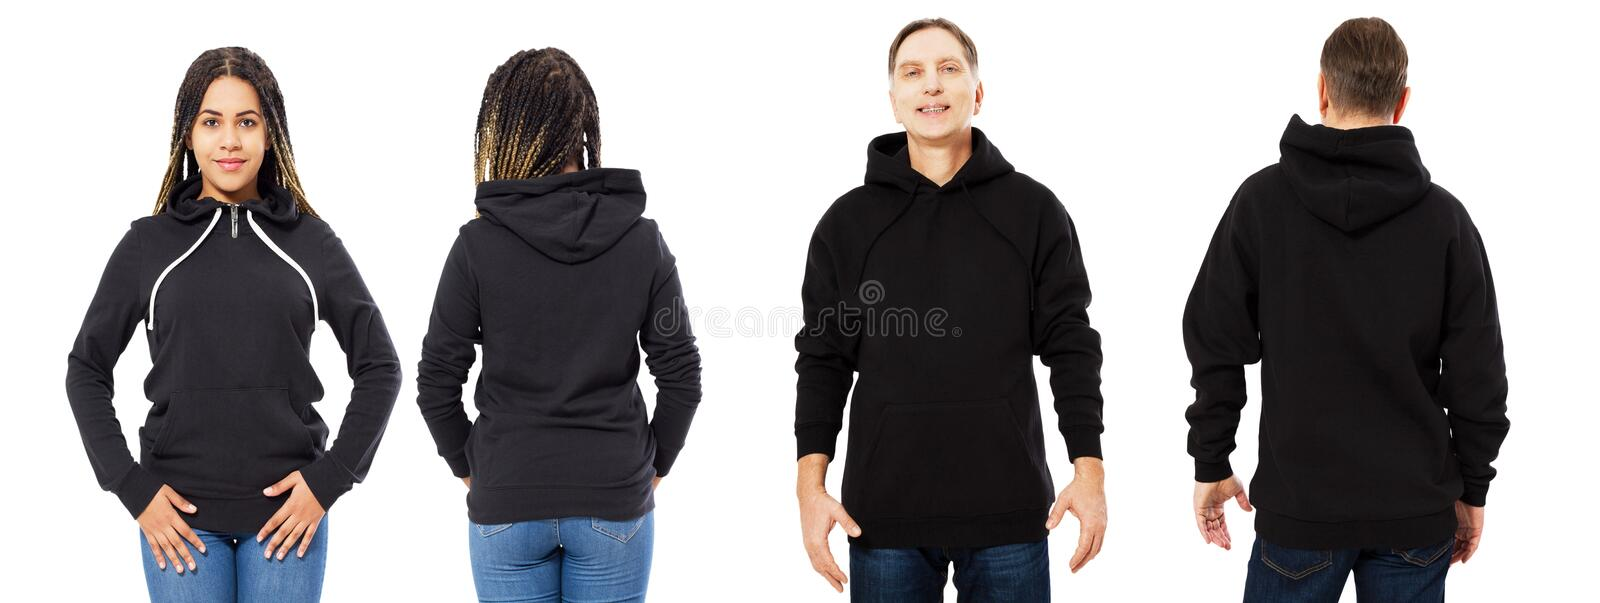 Black girl in hoodie mockup, man in empty hood front and back view isolated over white, hoodie set female and male royalty free stock images